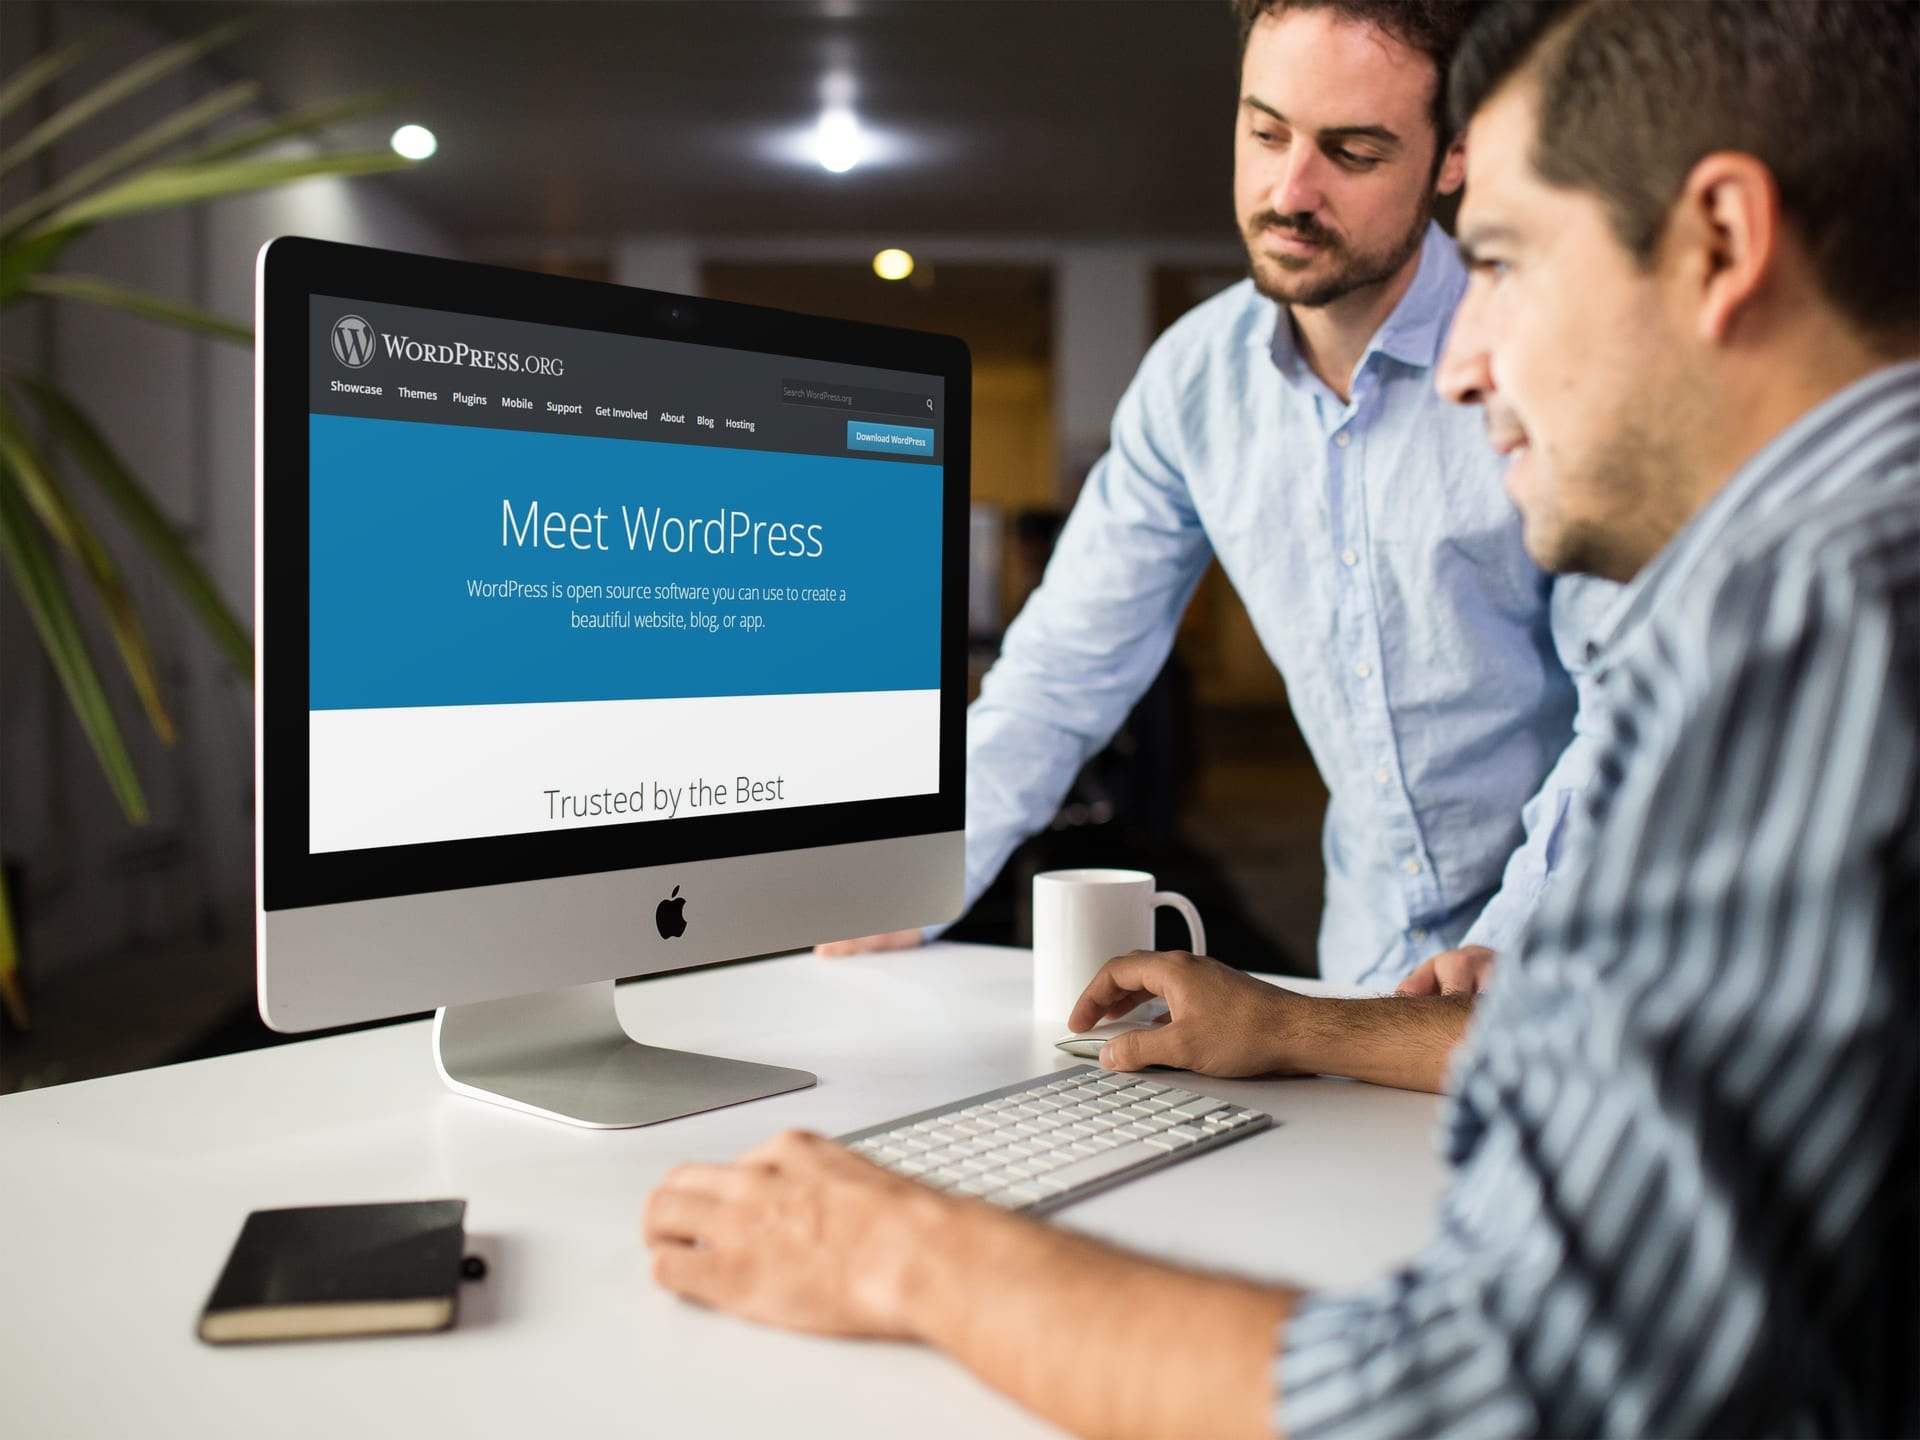 WordPress powers over 25% of the web. Here's why WordPress is right for you.